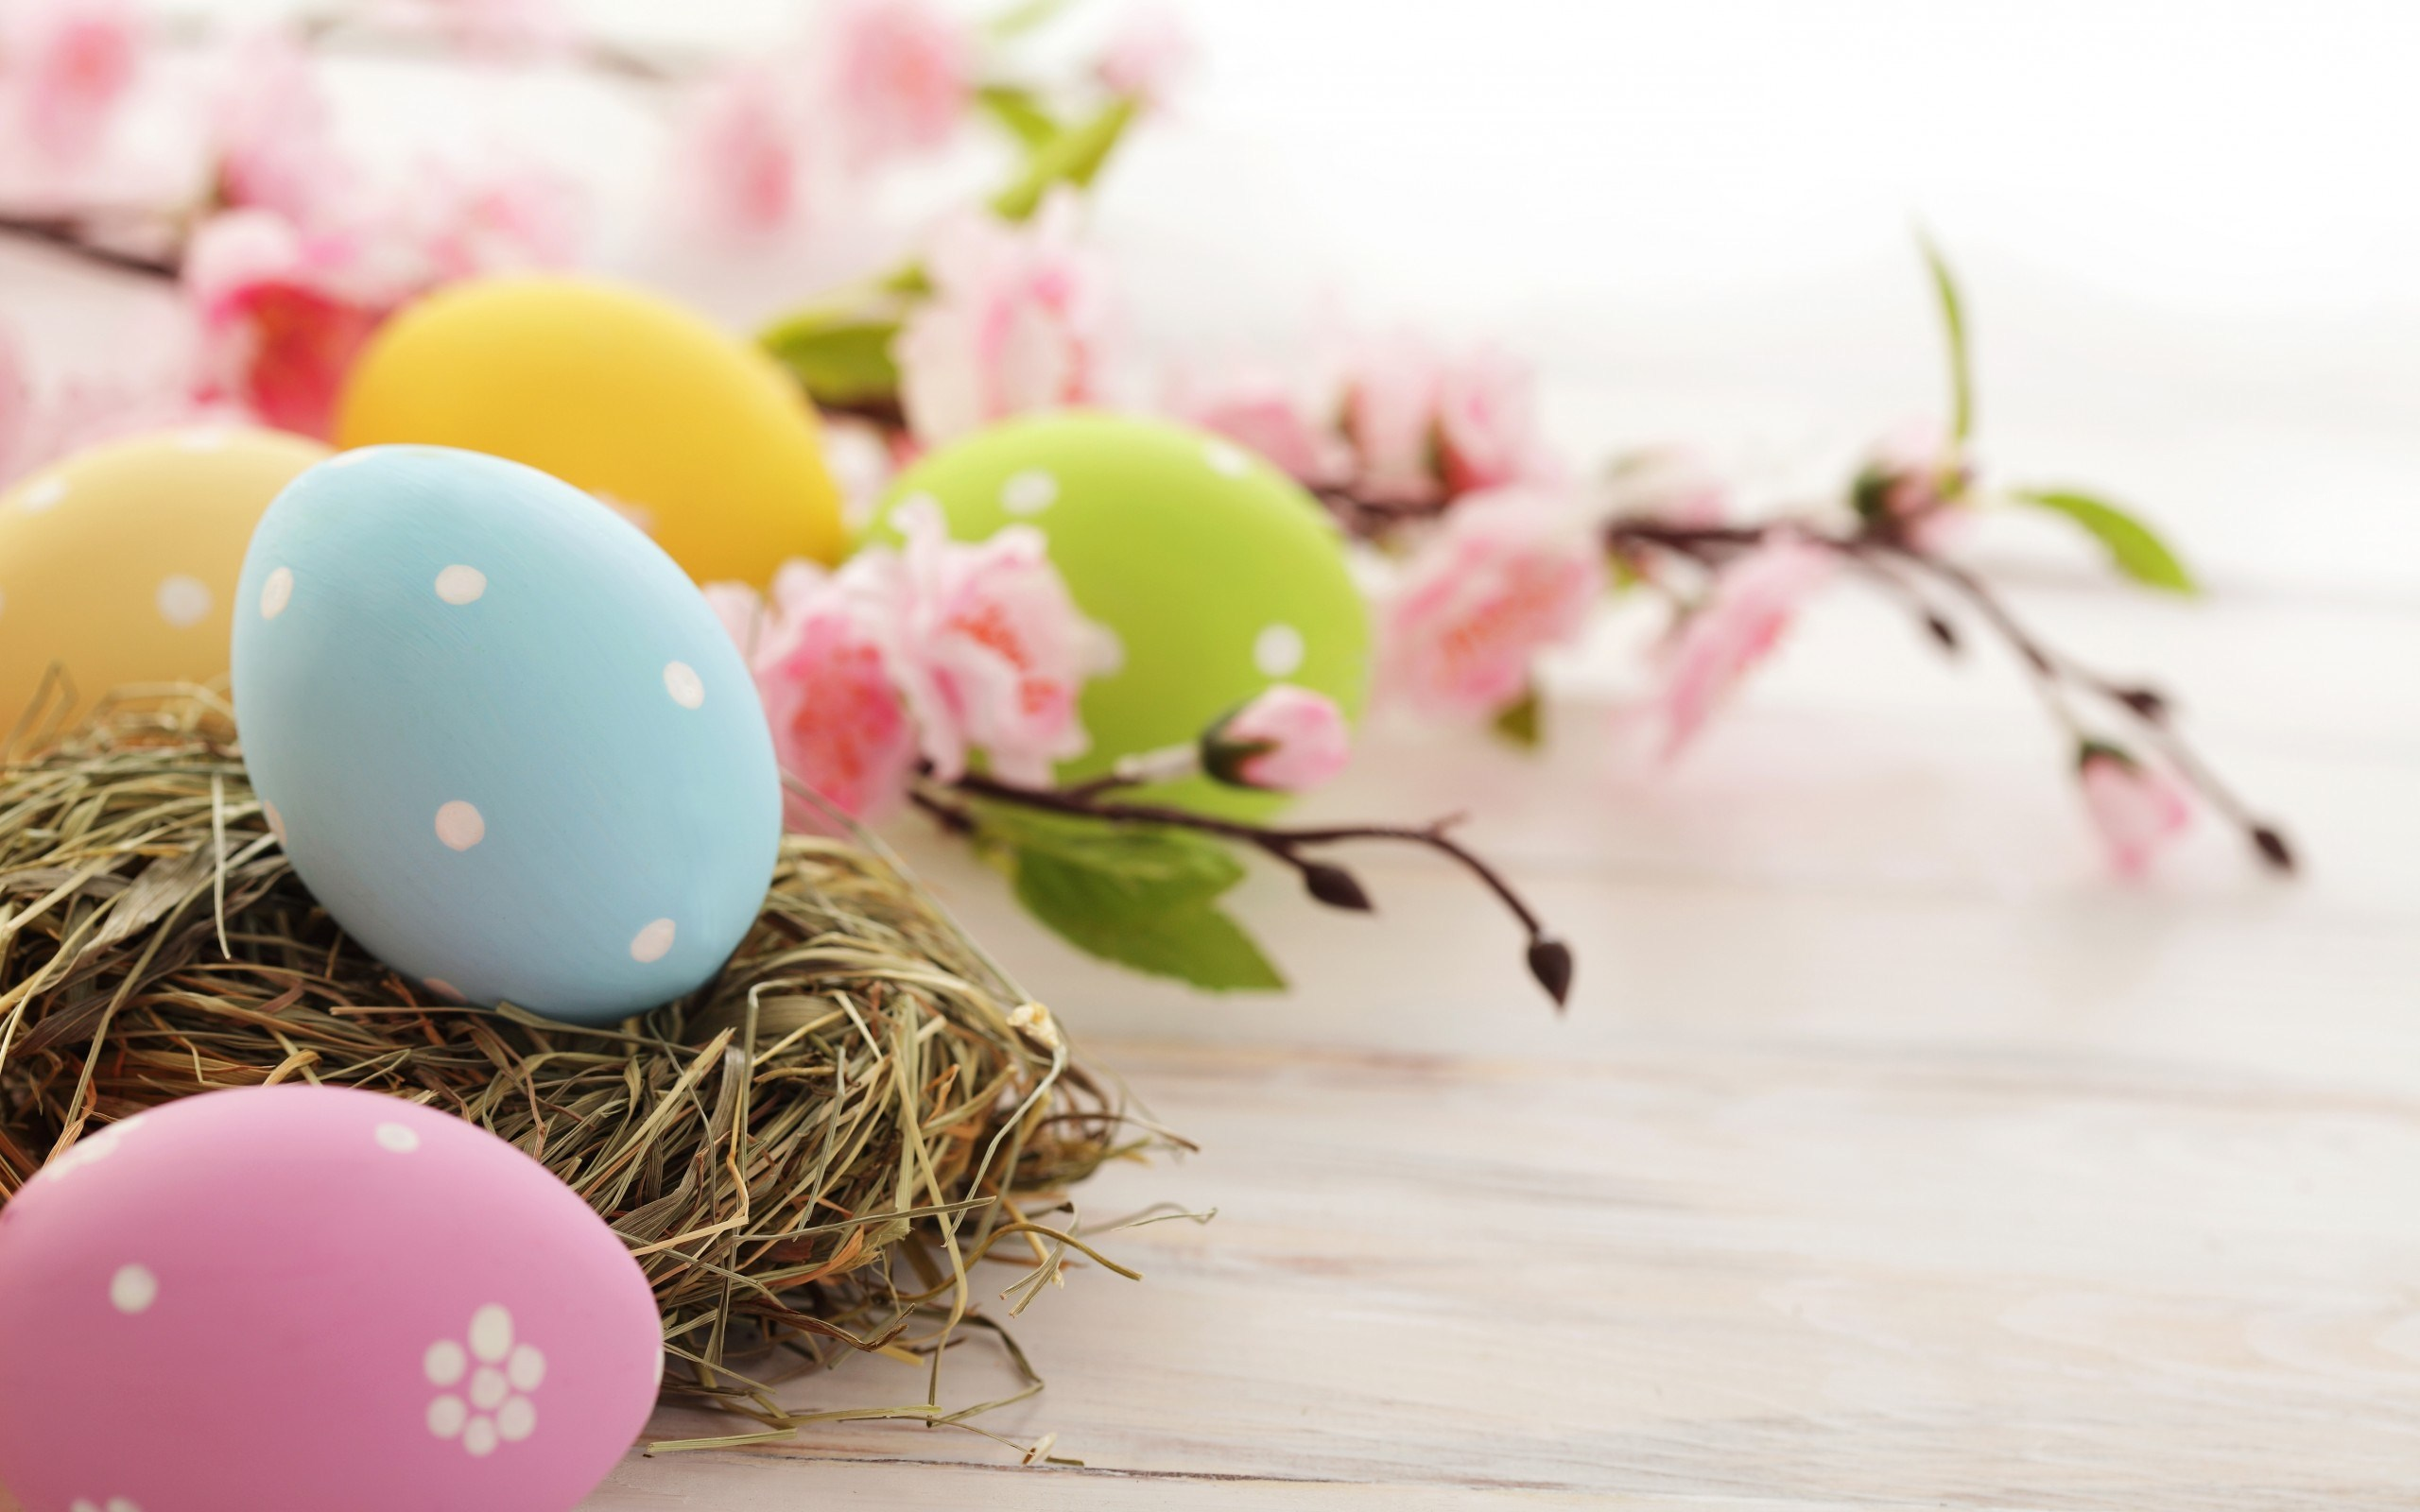 Easter Wallpaper 8   2560 X 1600 stmednet 2560x1600